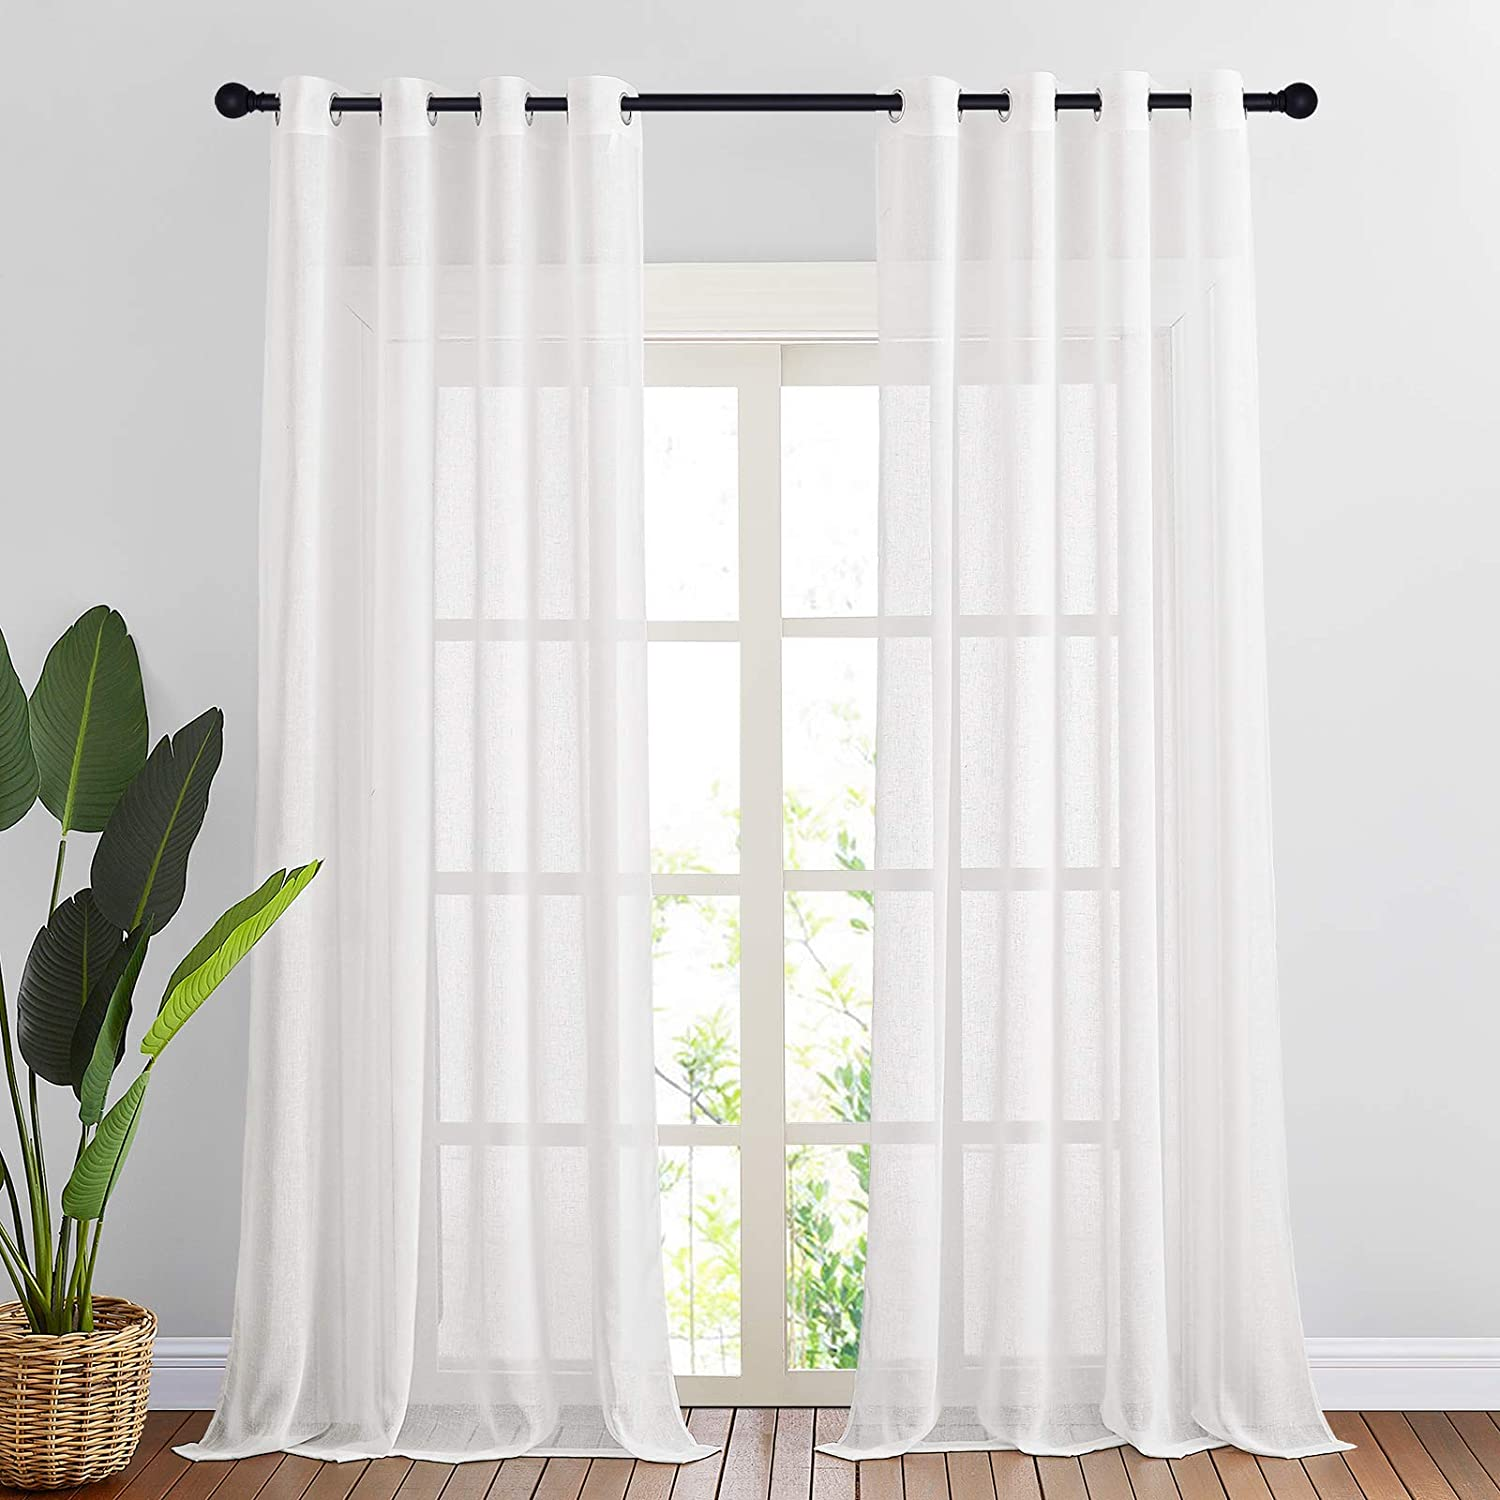 NICETOWN Sheer Linen Curtains for Living Room, Ring Top Textured Semi Sheer Panels Privacy Semitransparent Flax Open Linen Weave Sheer Drapes for Study Room, W52 x L96, White, 1 Pair